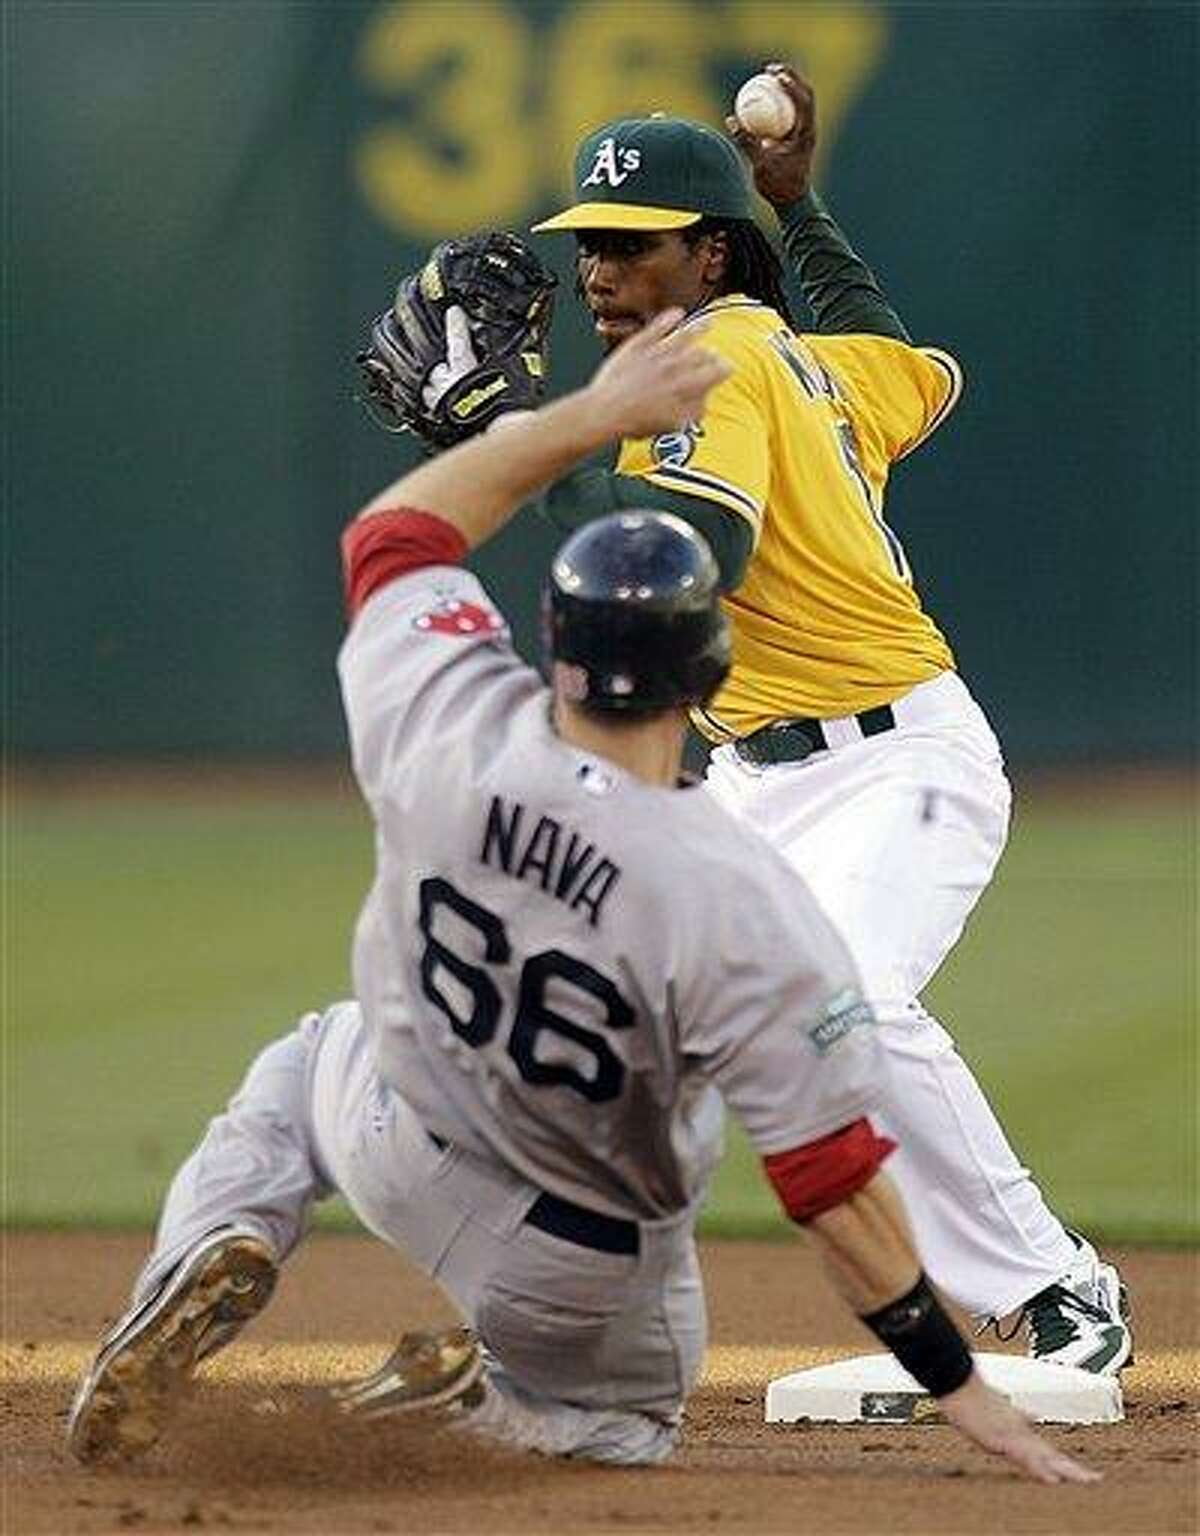 Oakland Athletics second baseman Jemile Weeks prepares his throw to first base over Boston Red Sox's Daniel Nava (66) in the first inning of a baseball game, Tuesday, July 3, 2012, in Oakland, Calif. Boston's Dustin Pedroia was out at first base. (AP Photo/Ben Margot)